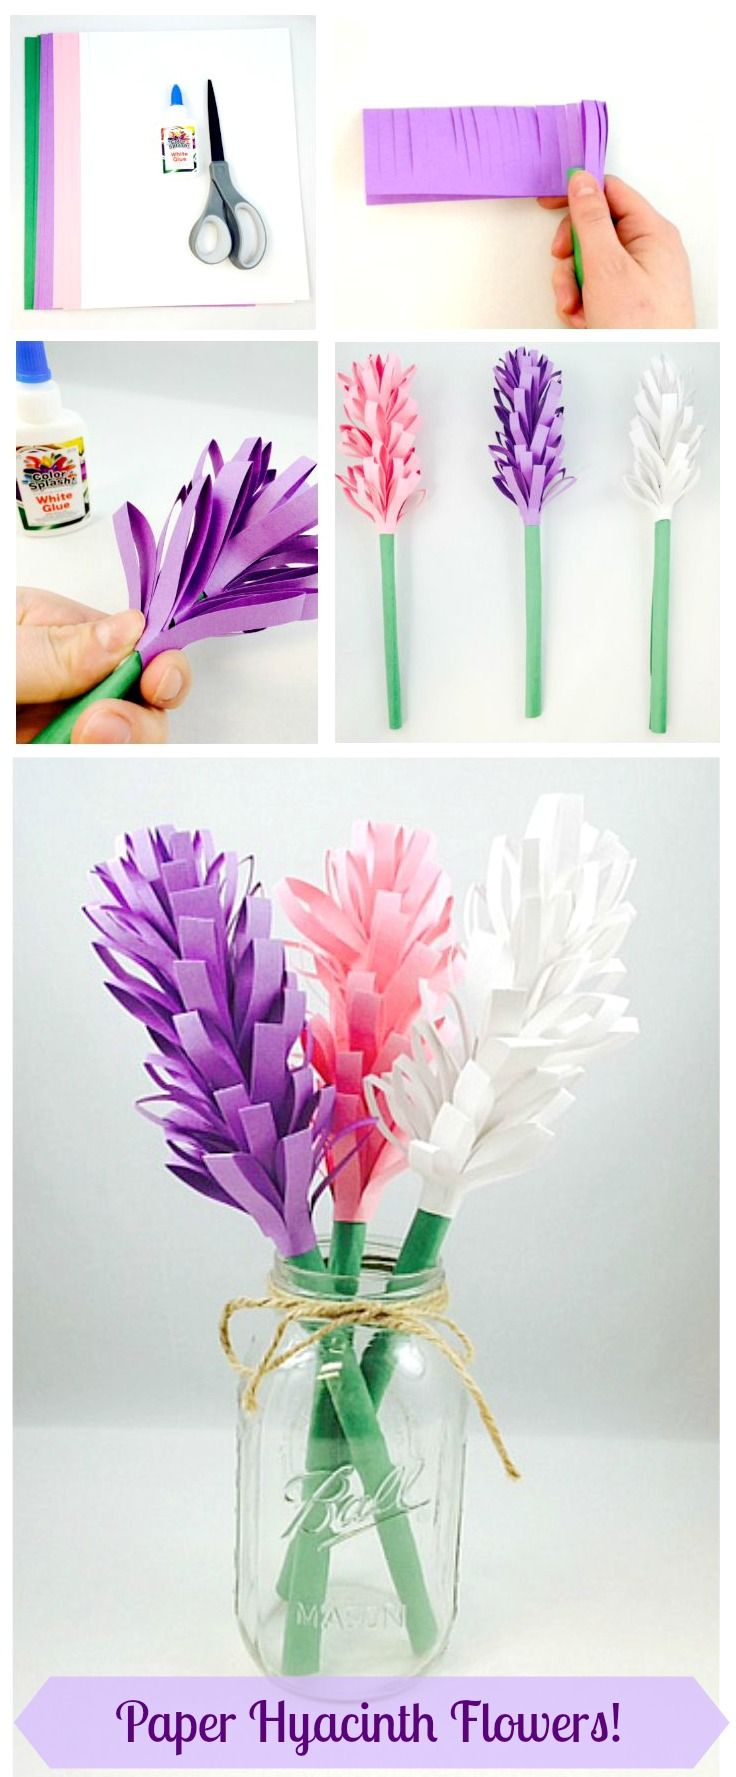 Easy paper hyacinth flowers random pinterest crafts spring easy paper hyacinth flowers random pinterest crafts spring crafts and paper crafts izmirmasajfo